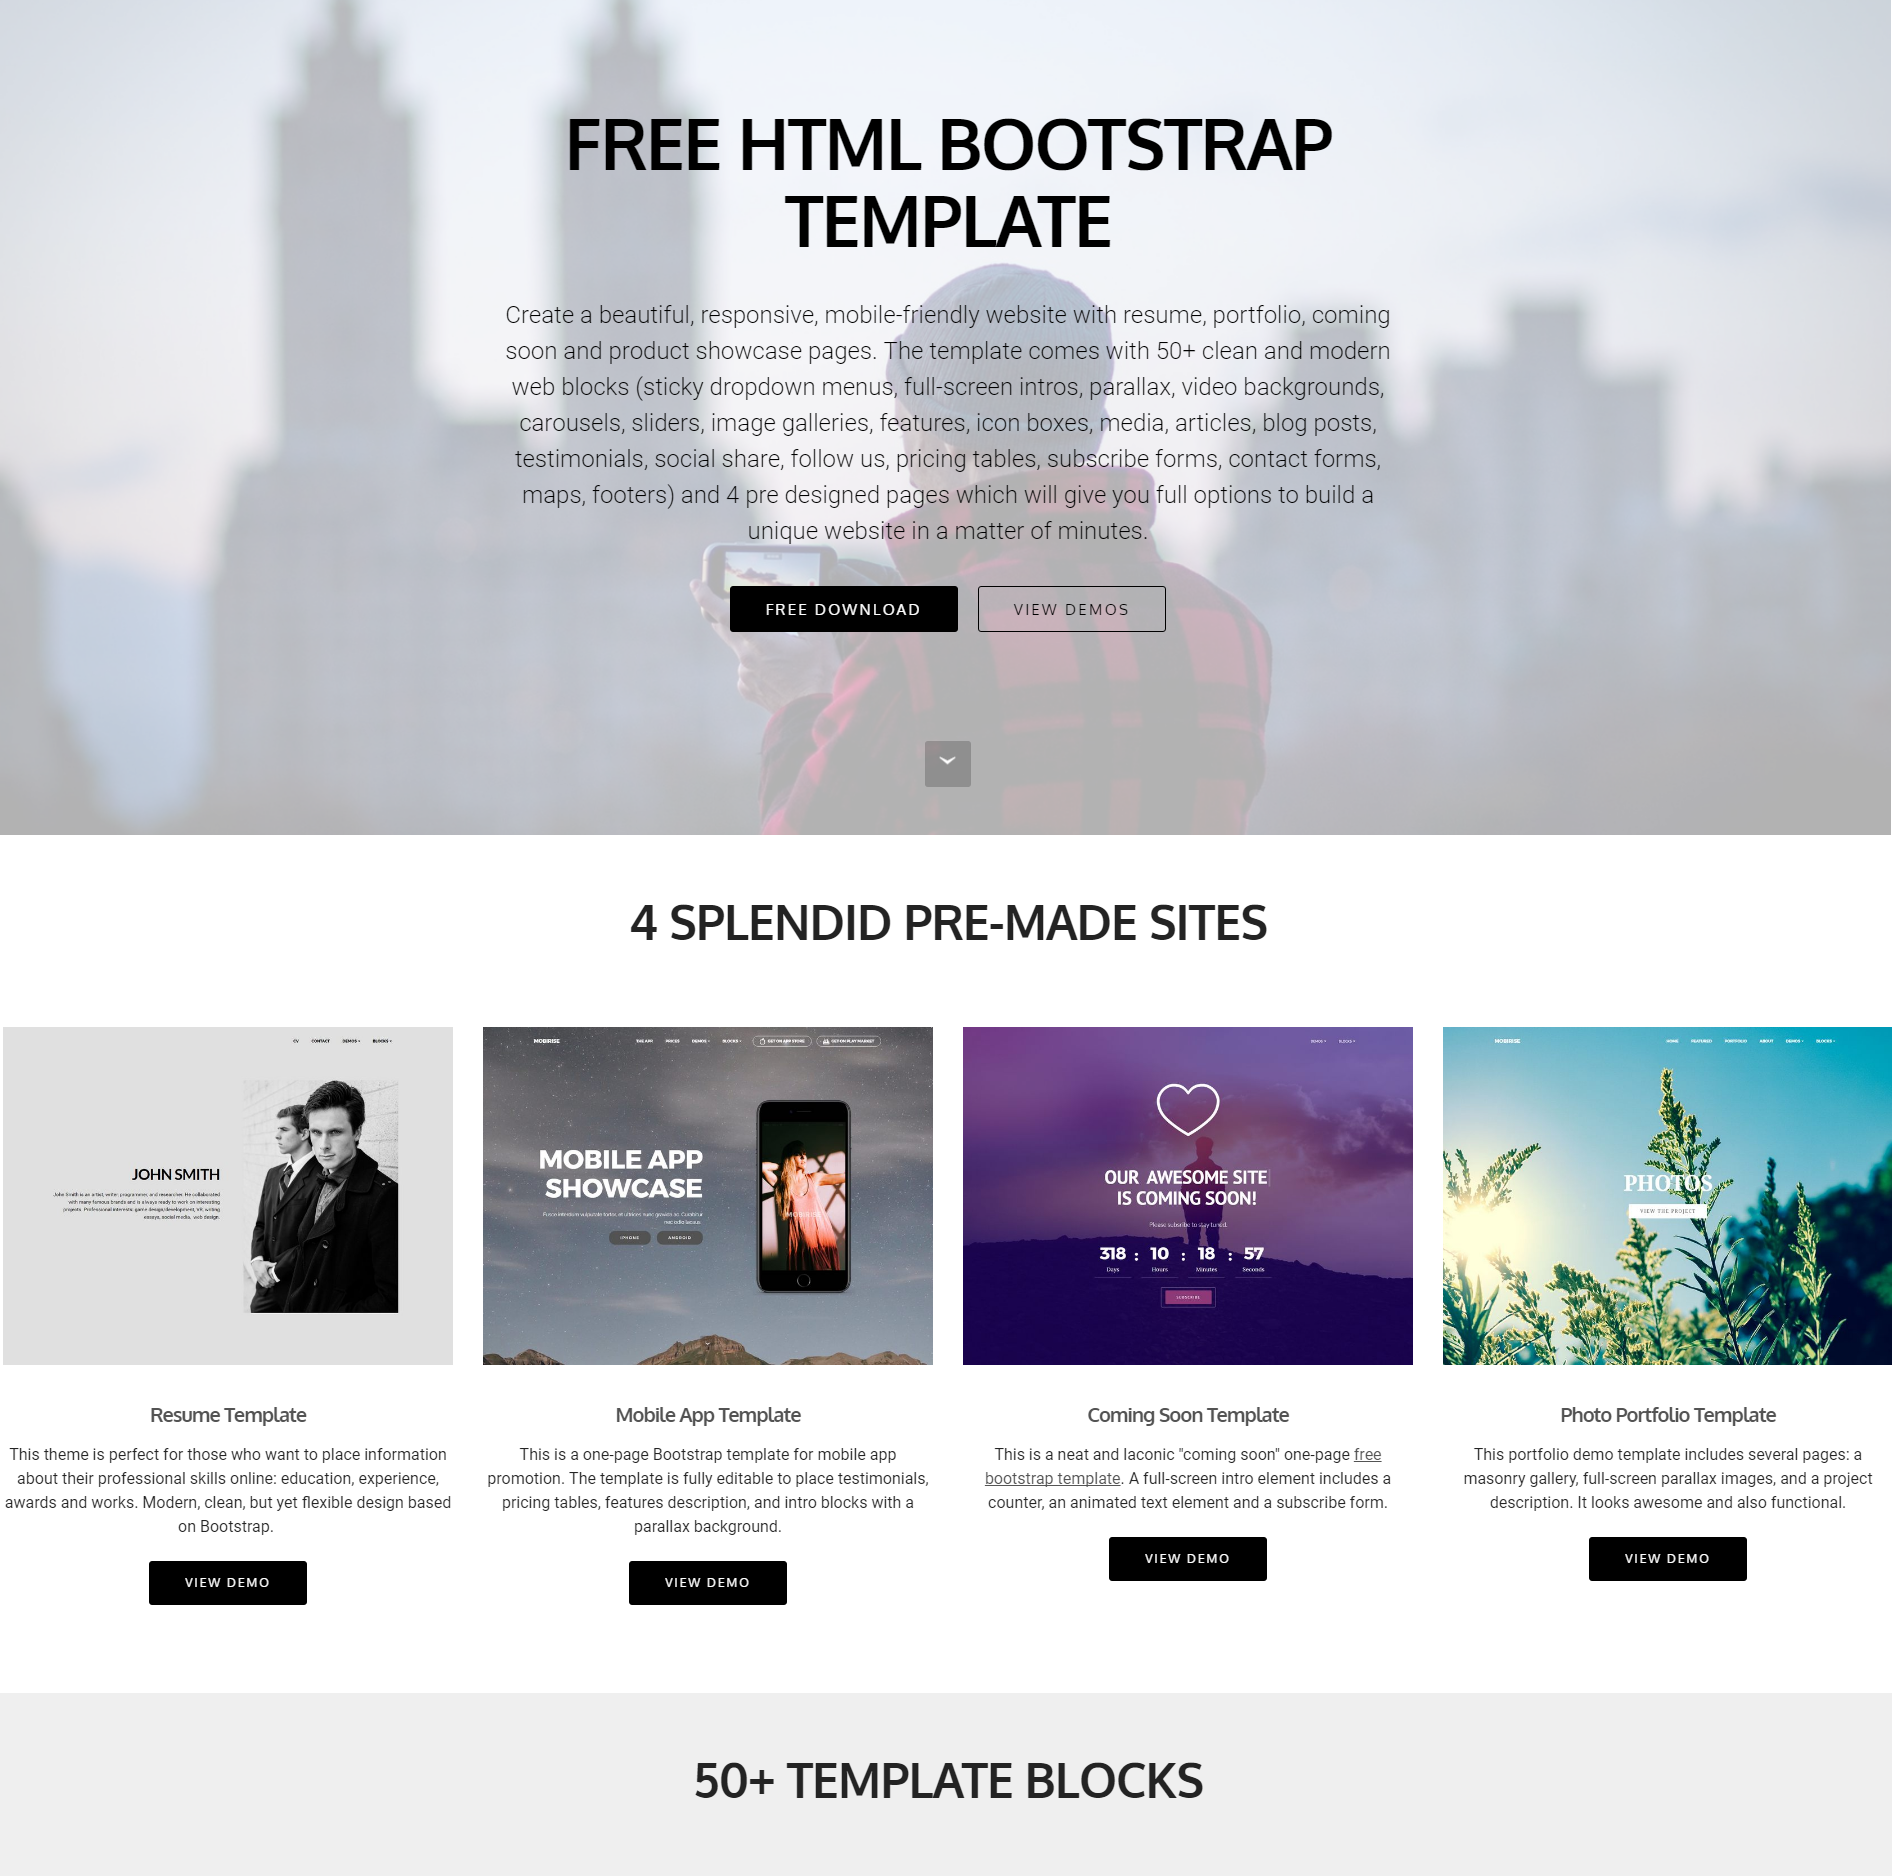 30+ Free HTML5 Bootstrap Templates of 2018 That Will Wow You